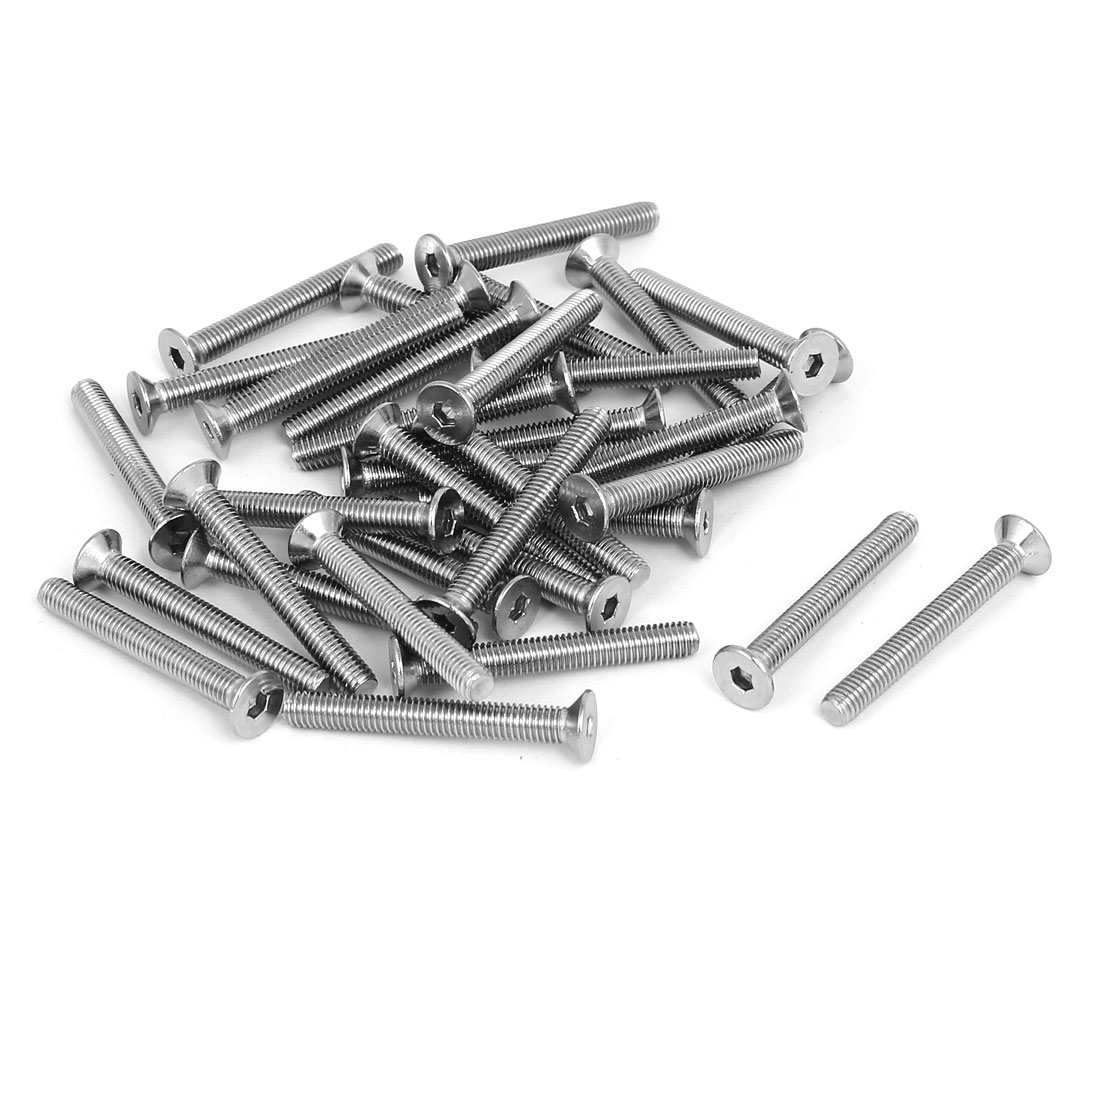 M5x40mm 304 Stainless Steel Flat Head Hex Socket Screws Fasteners DIN7991 35pcs